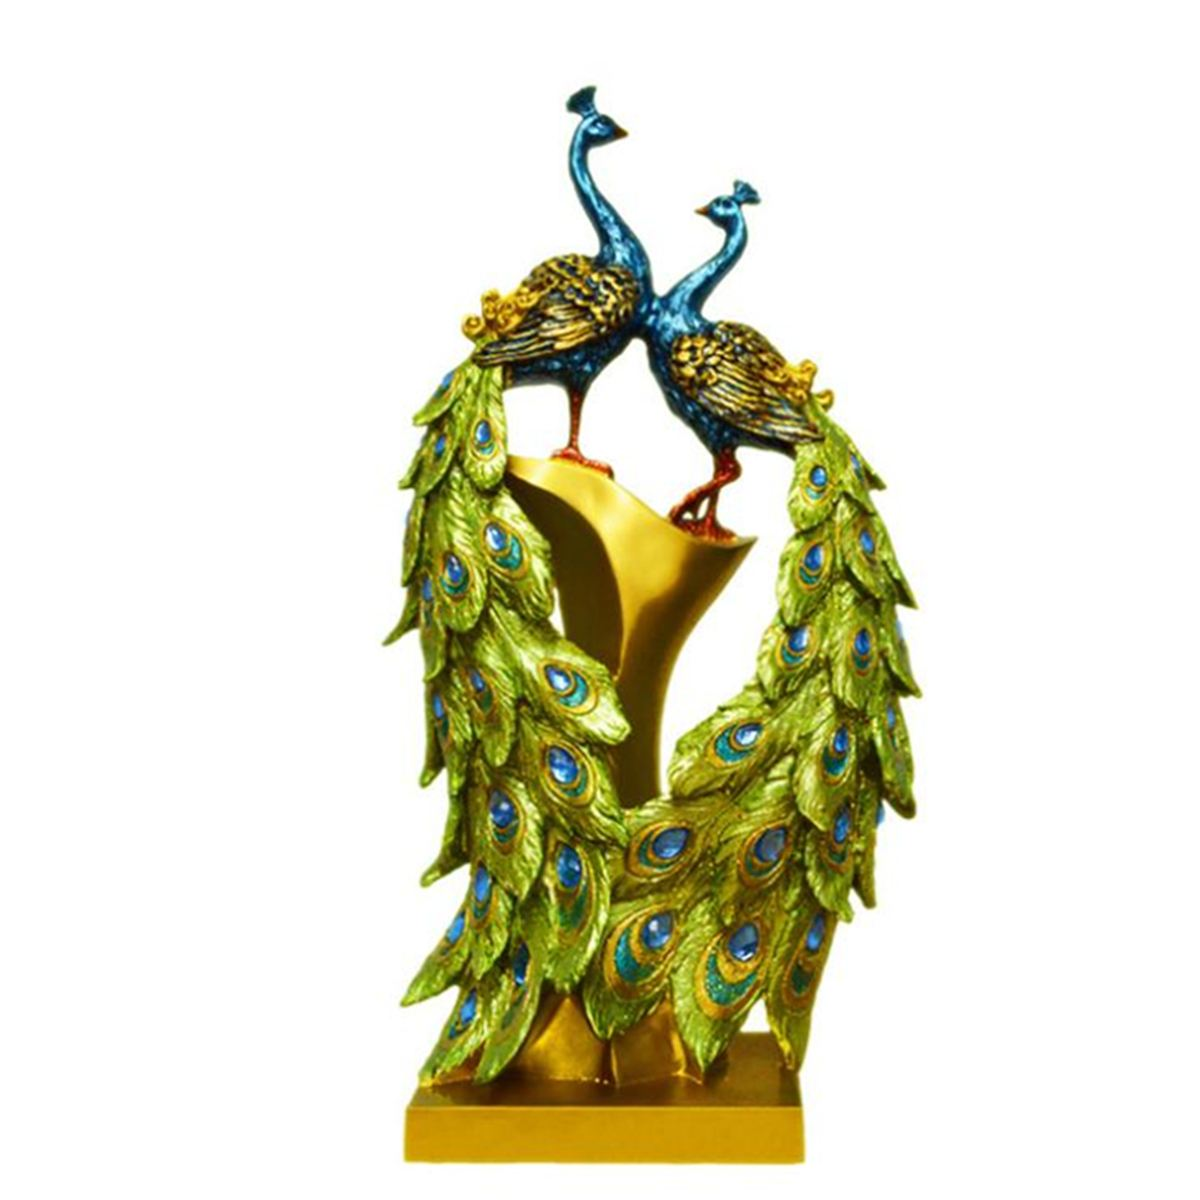 Traditional Chinese Peacock Couple Sculpture Lovers Peacock Statue Mascot Craft Ornament Decoration Valentine's Day Gift